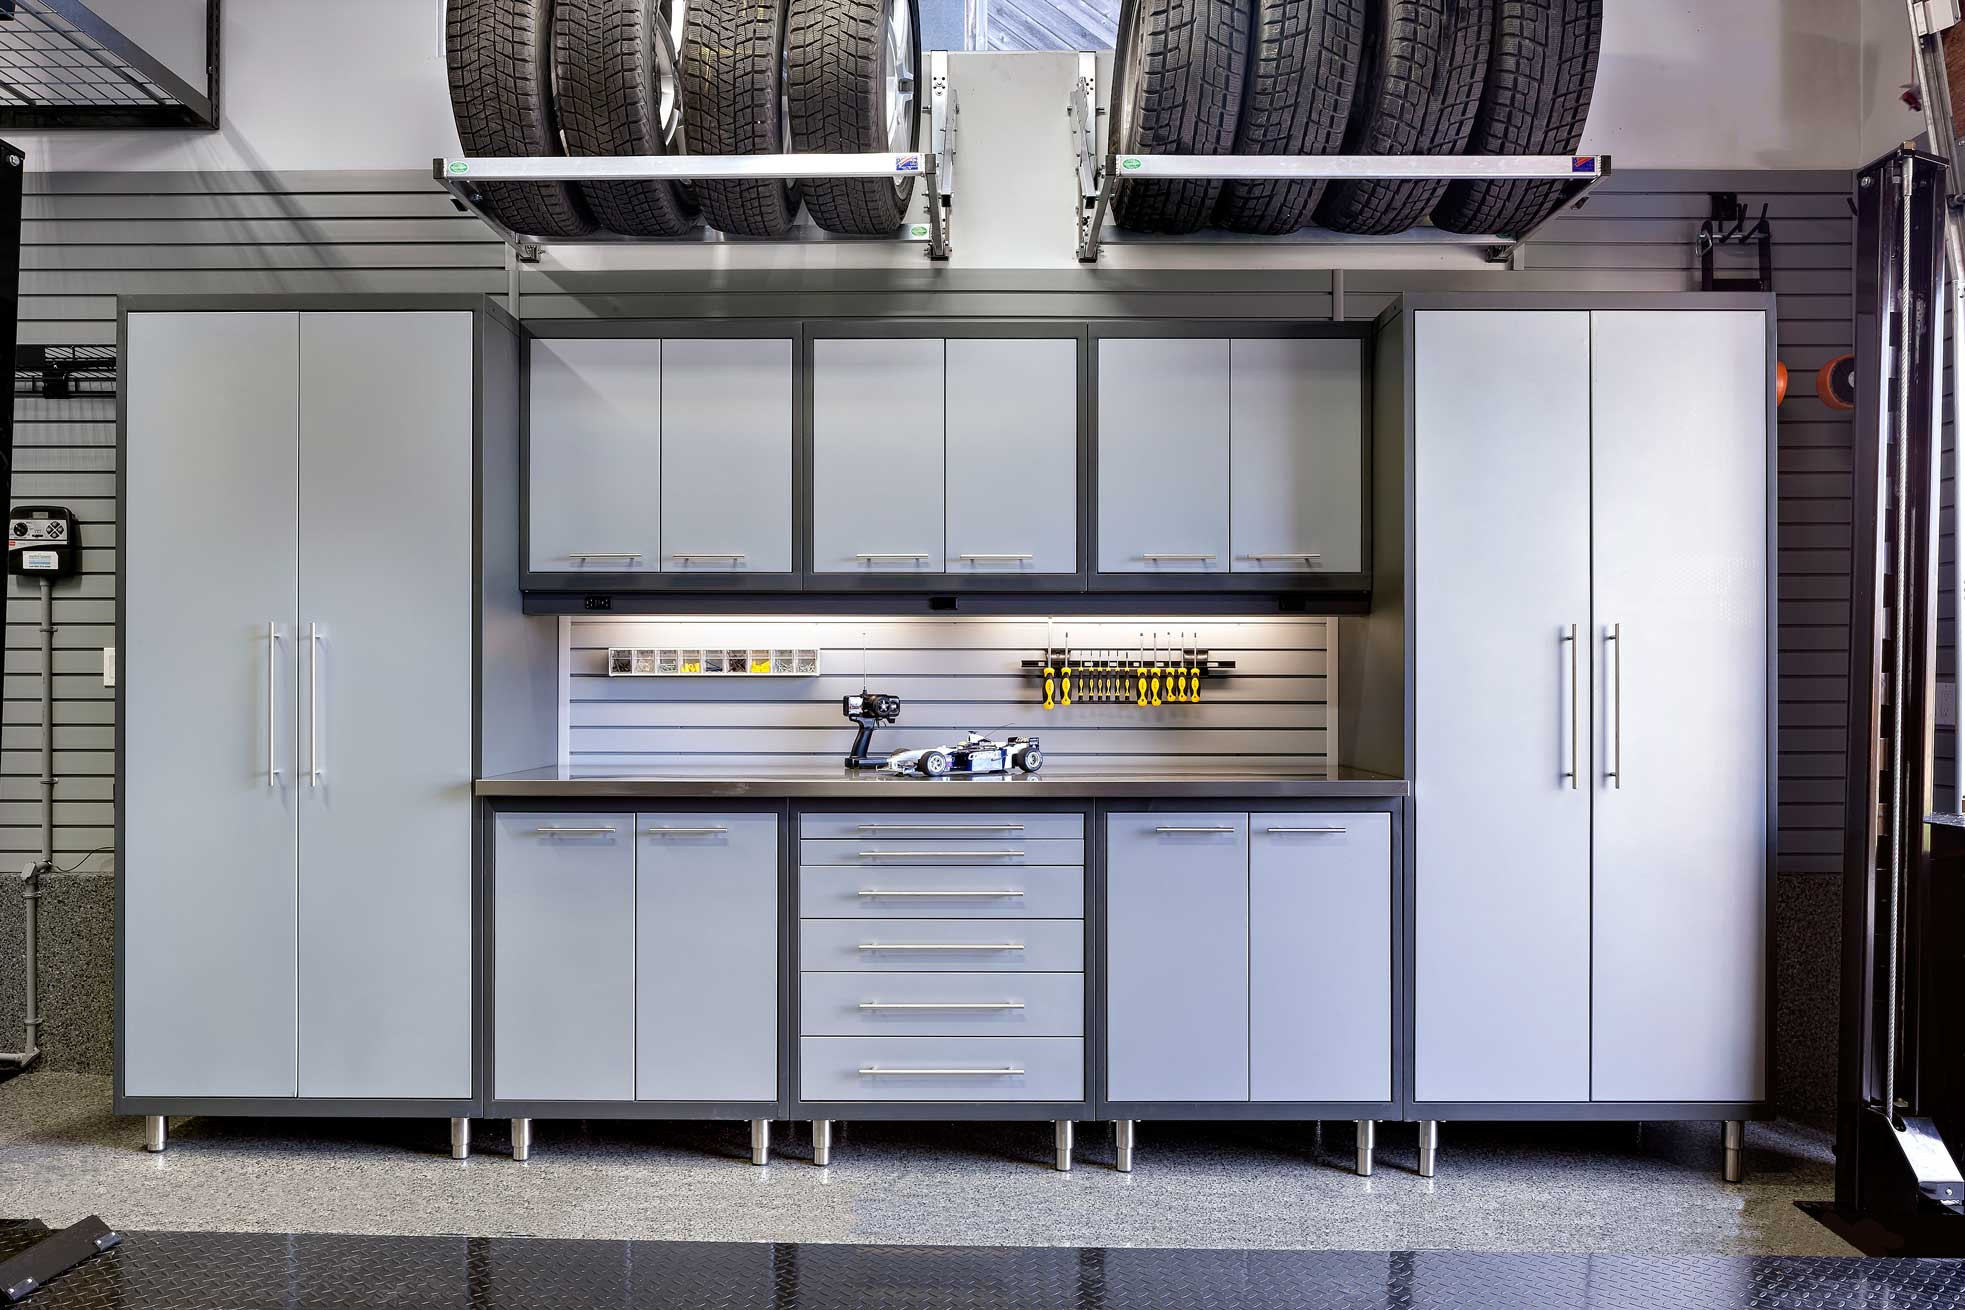 Garage Organization Systems  4 Storage Options That Will Maximize Your Garage Space